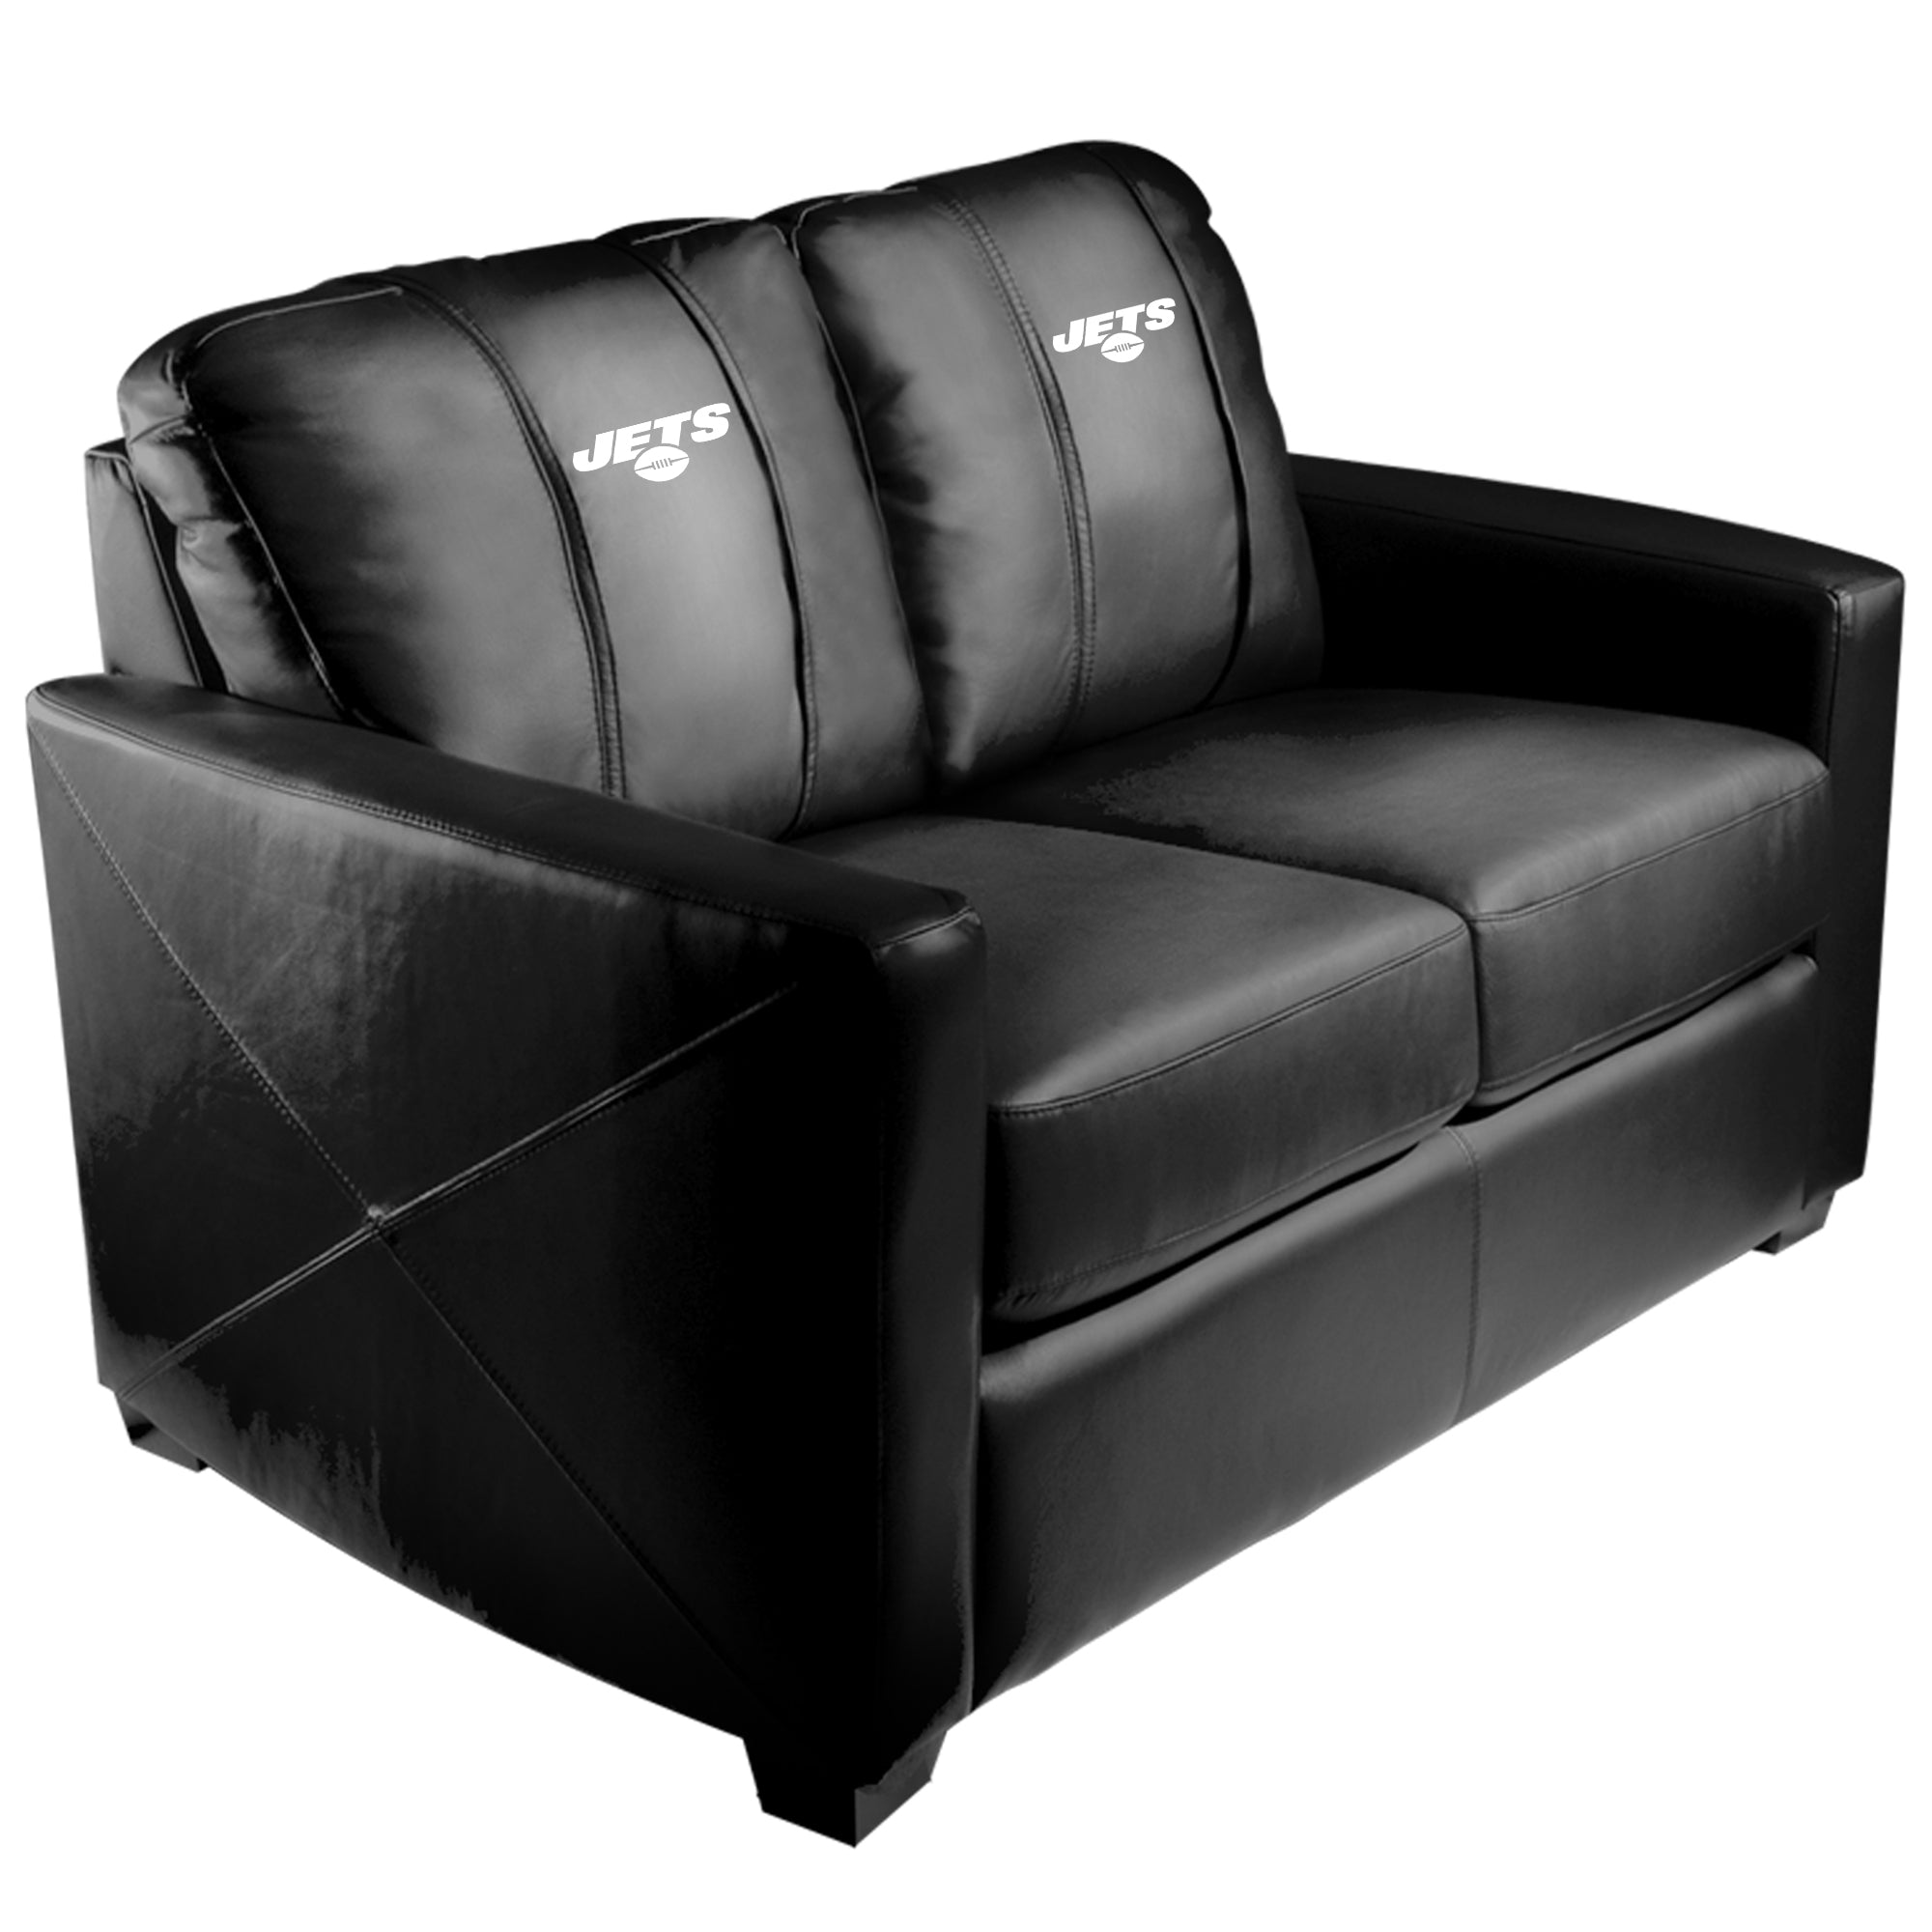 Silver Loveseat with  New York Jets Secondary Logo